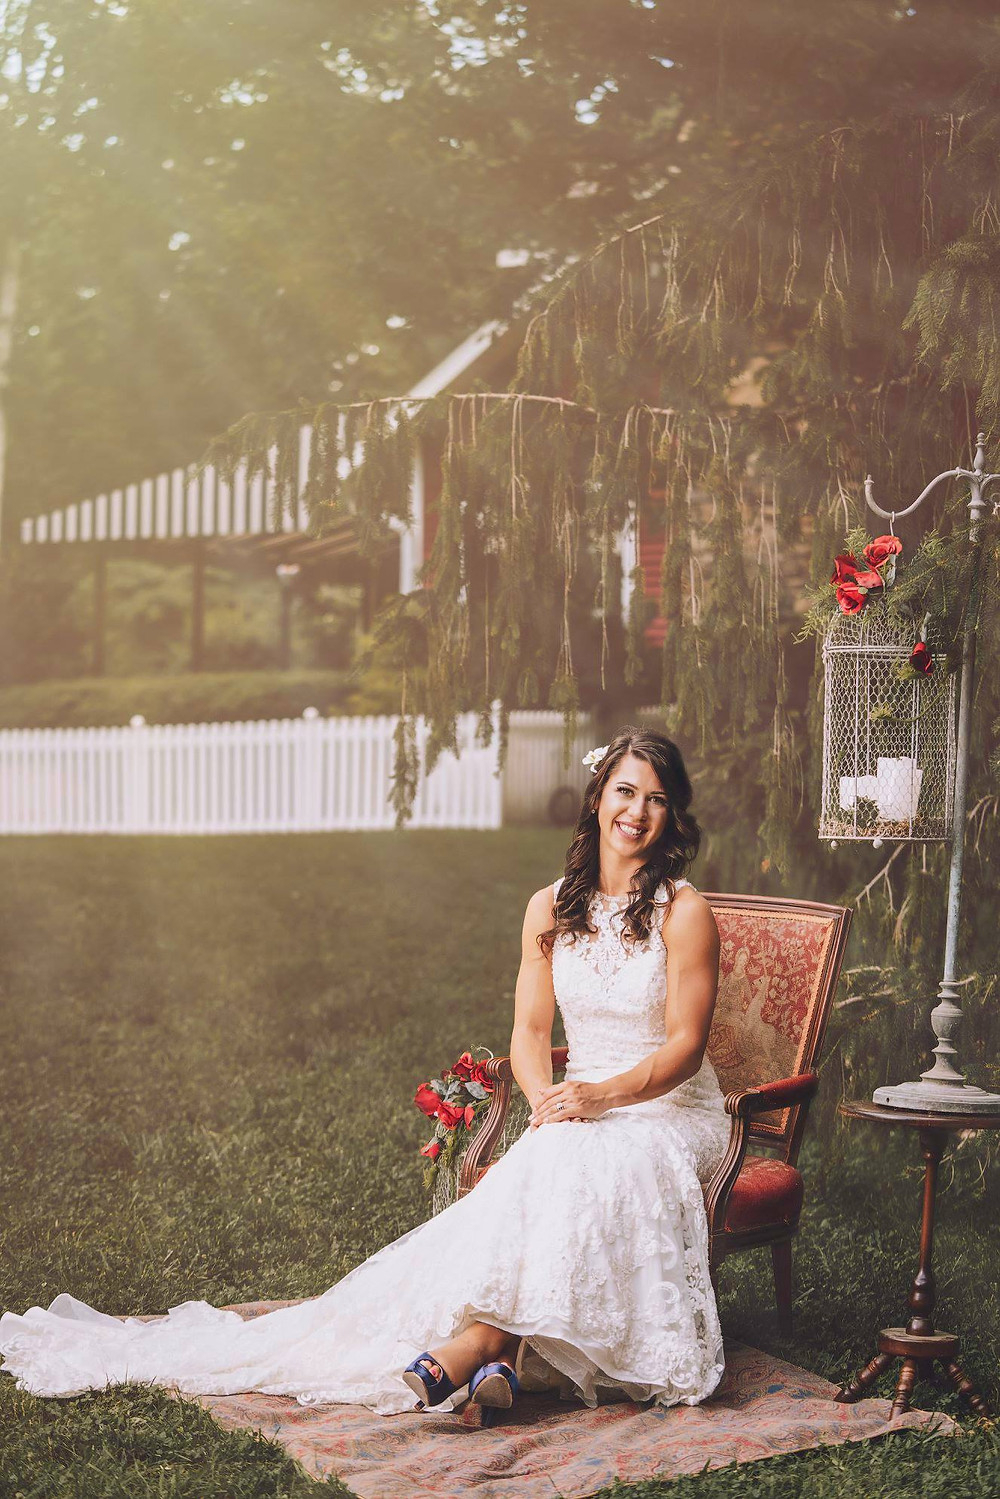 Rentals for bridal photography and Events -